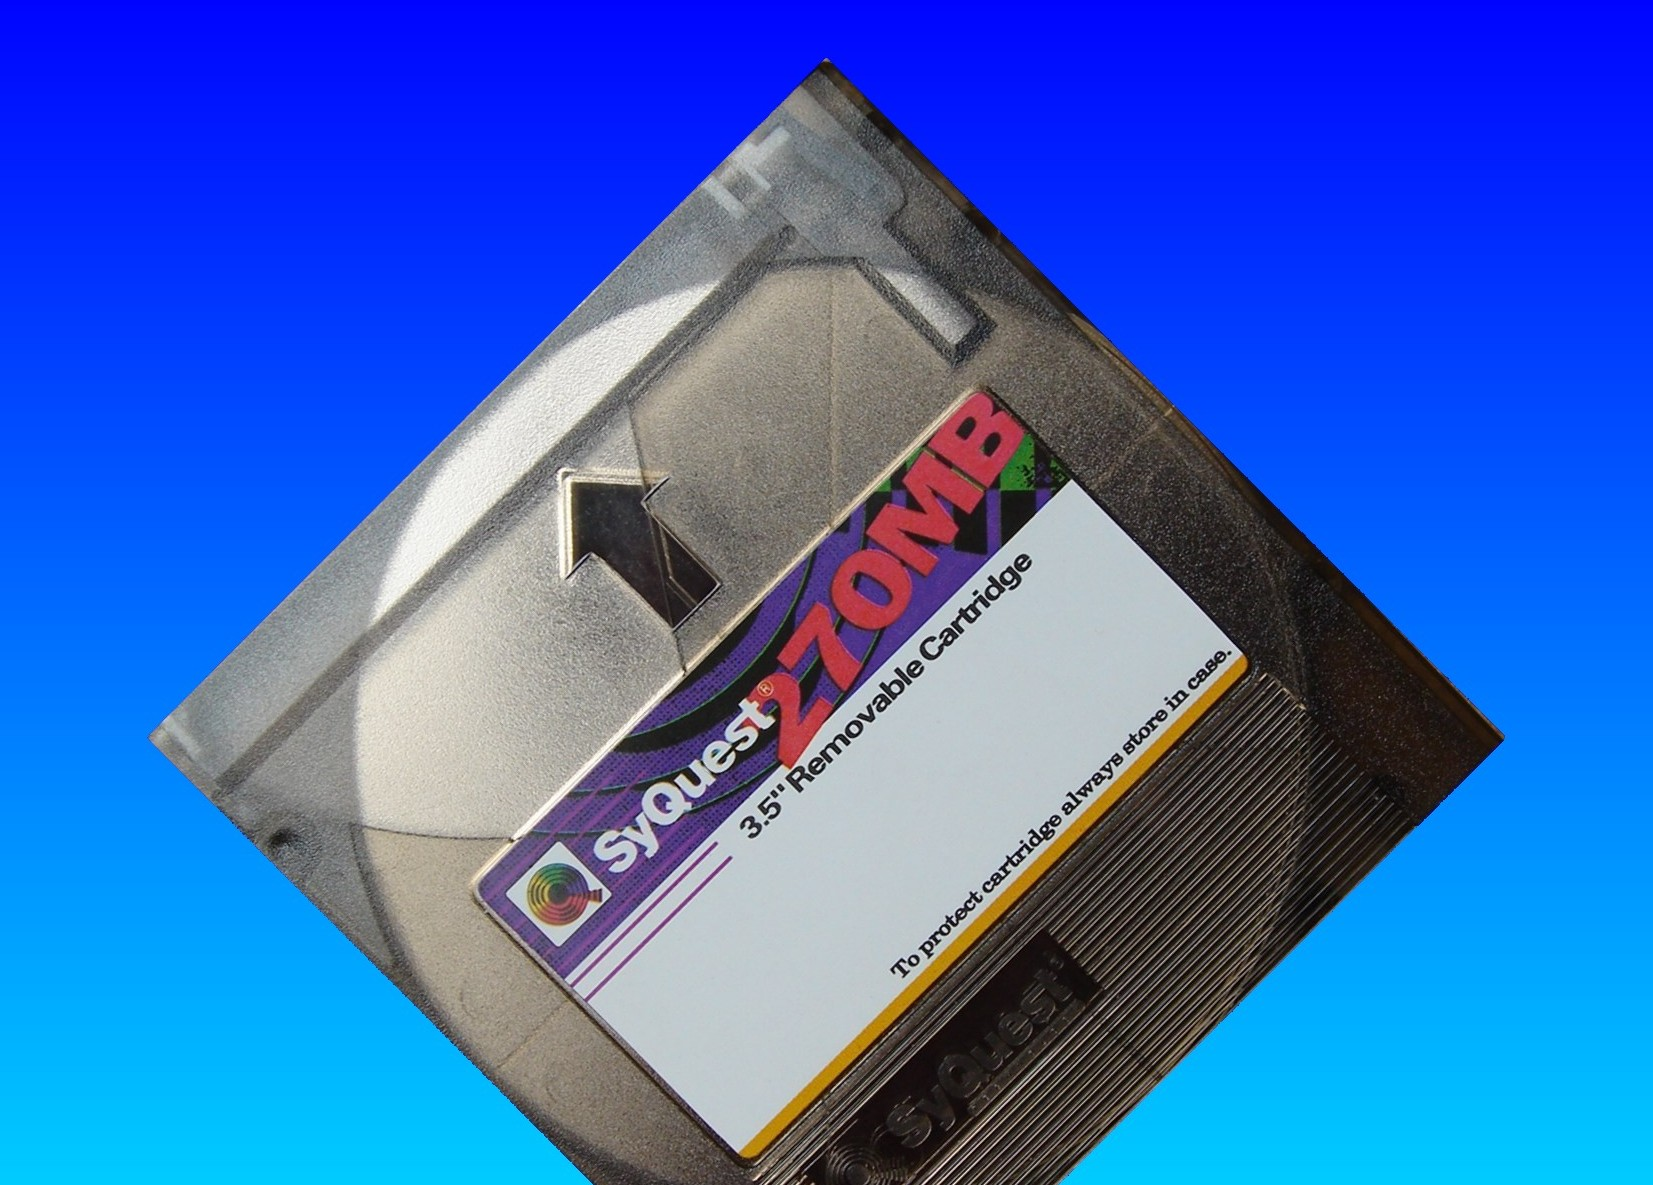 A Syquest 270mb removable cartridge that was sent for conversion from Apple Mac to Windows Computer.